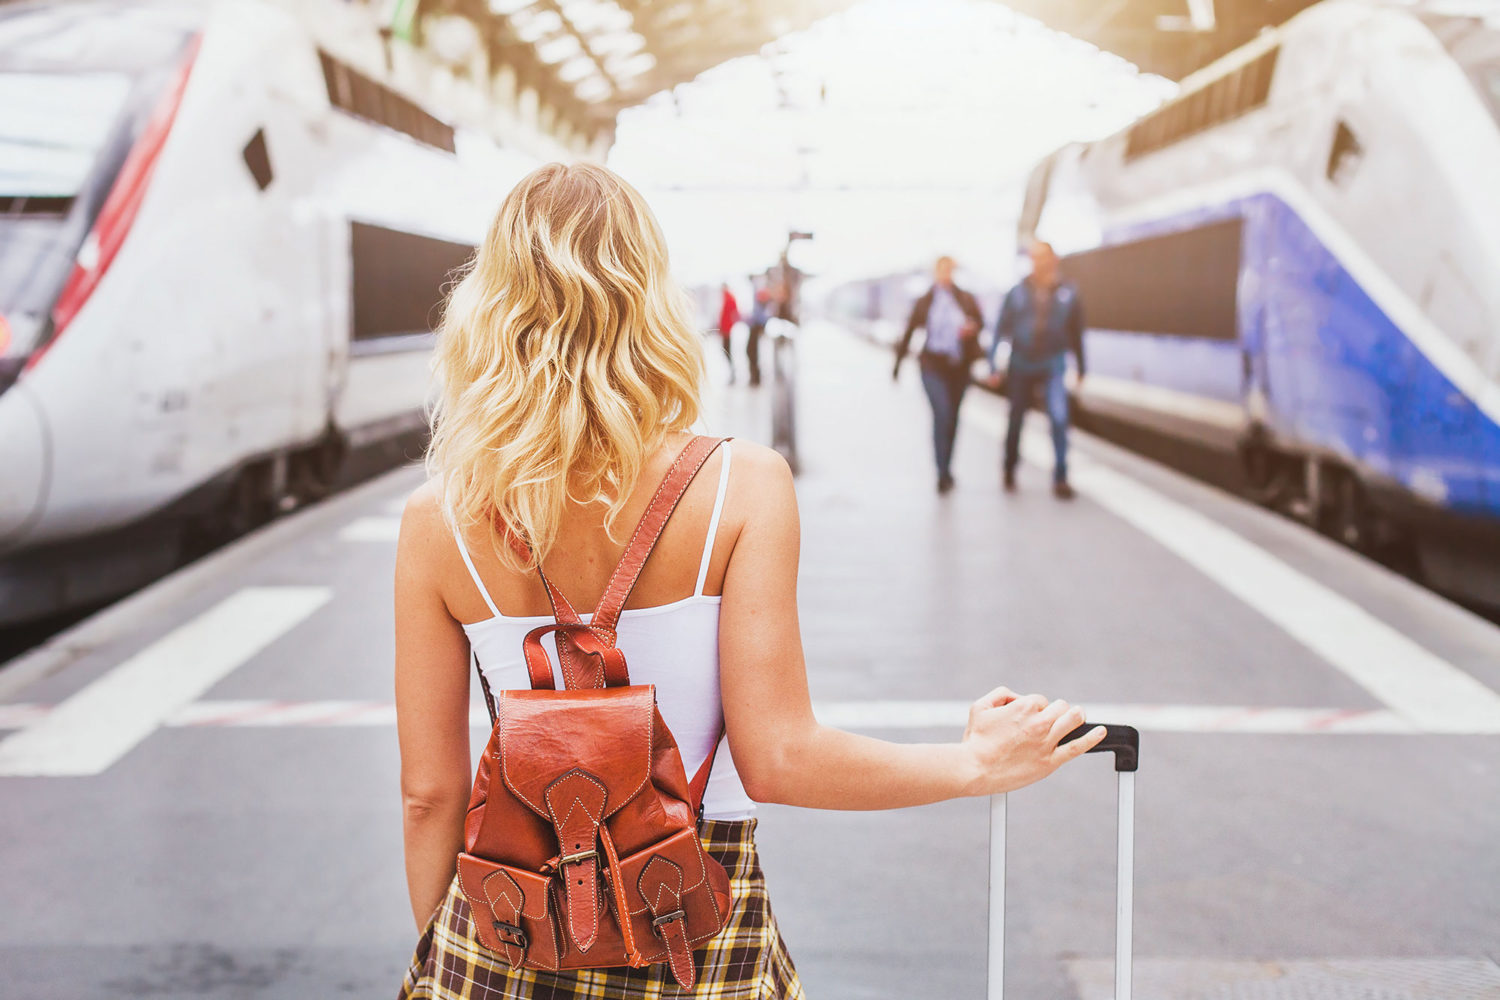 Blond woman with bags walking towards a train platform